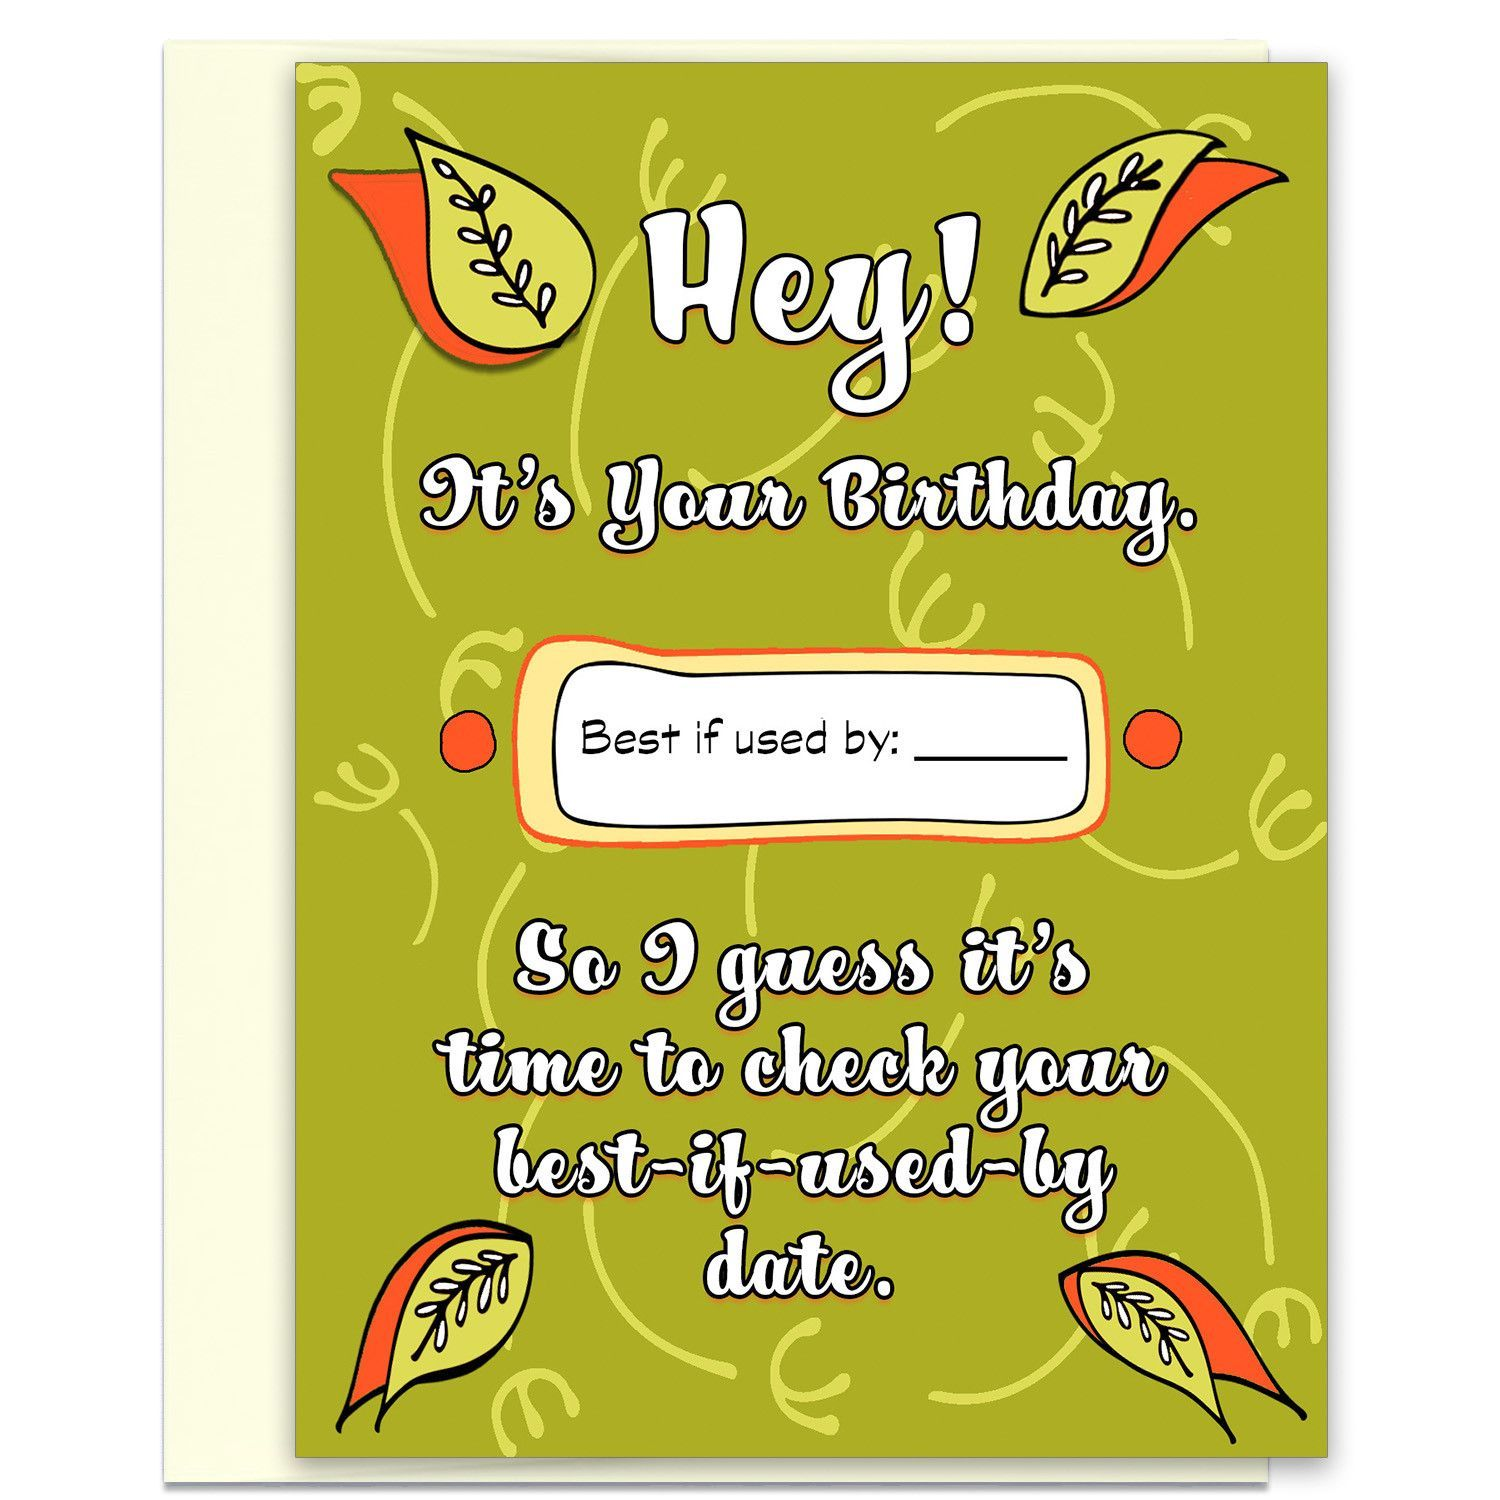 Wholesale best if used by date birthday card for friends funny wholesale best if used by date birthday card for friends kristyandbryce Choice Image